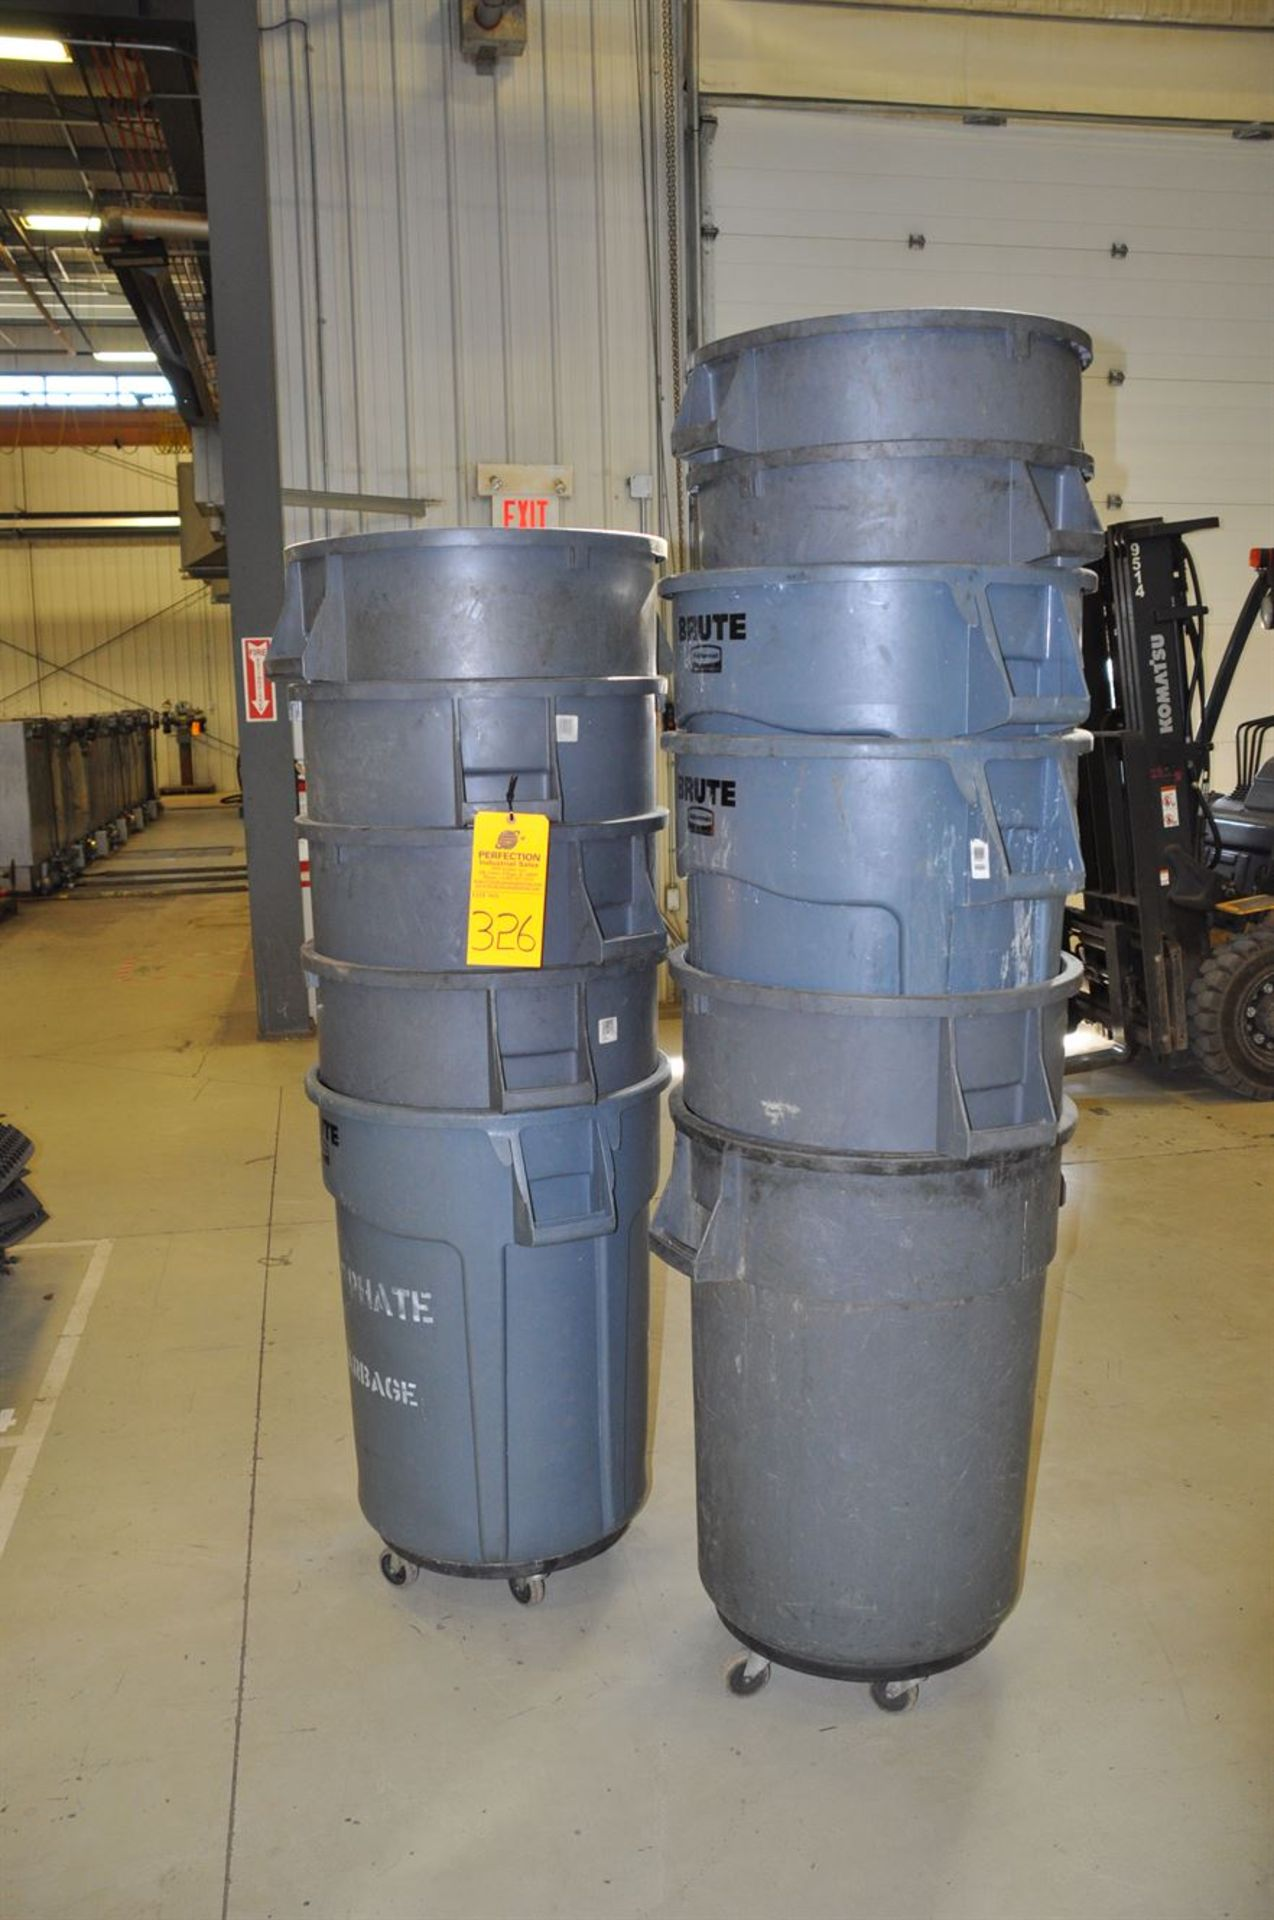 Rubbermaid Trash Cans, assorted sizes